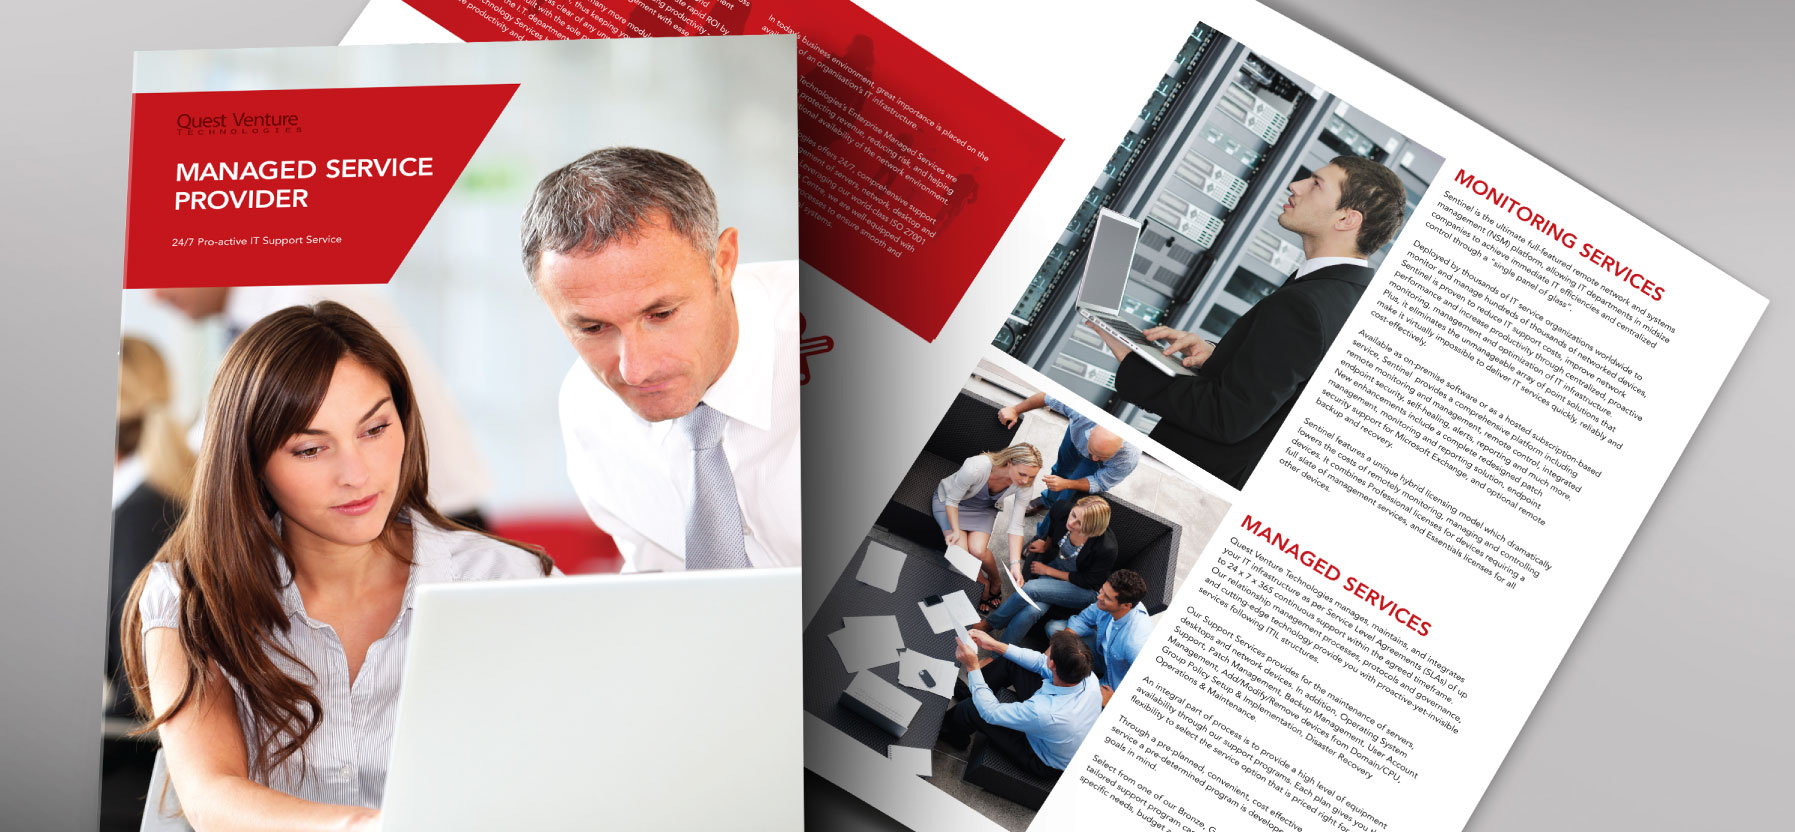 Creative art direction, concept and design layout for corporate folder and profile